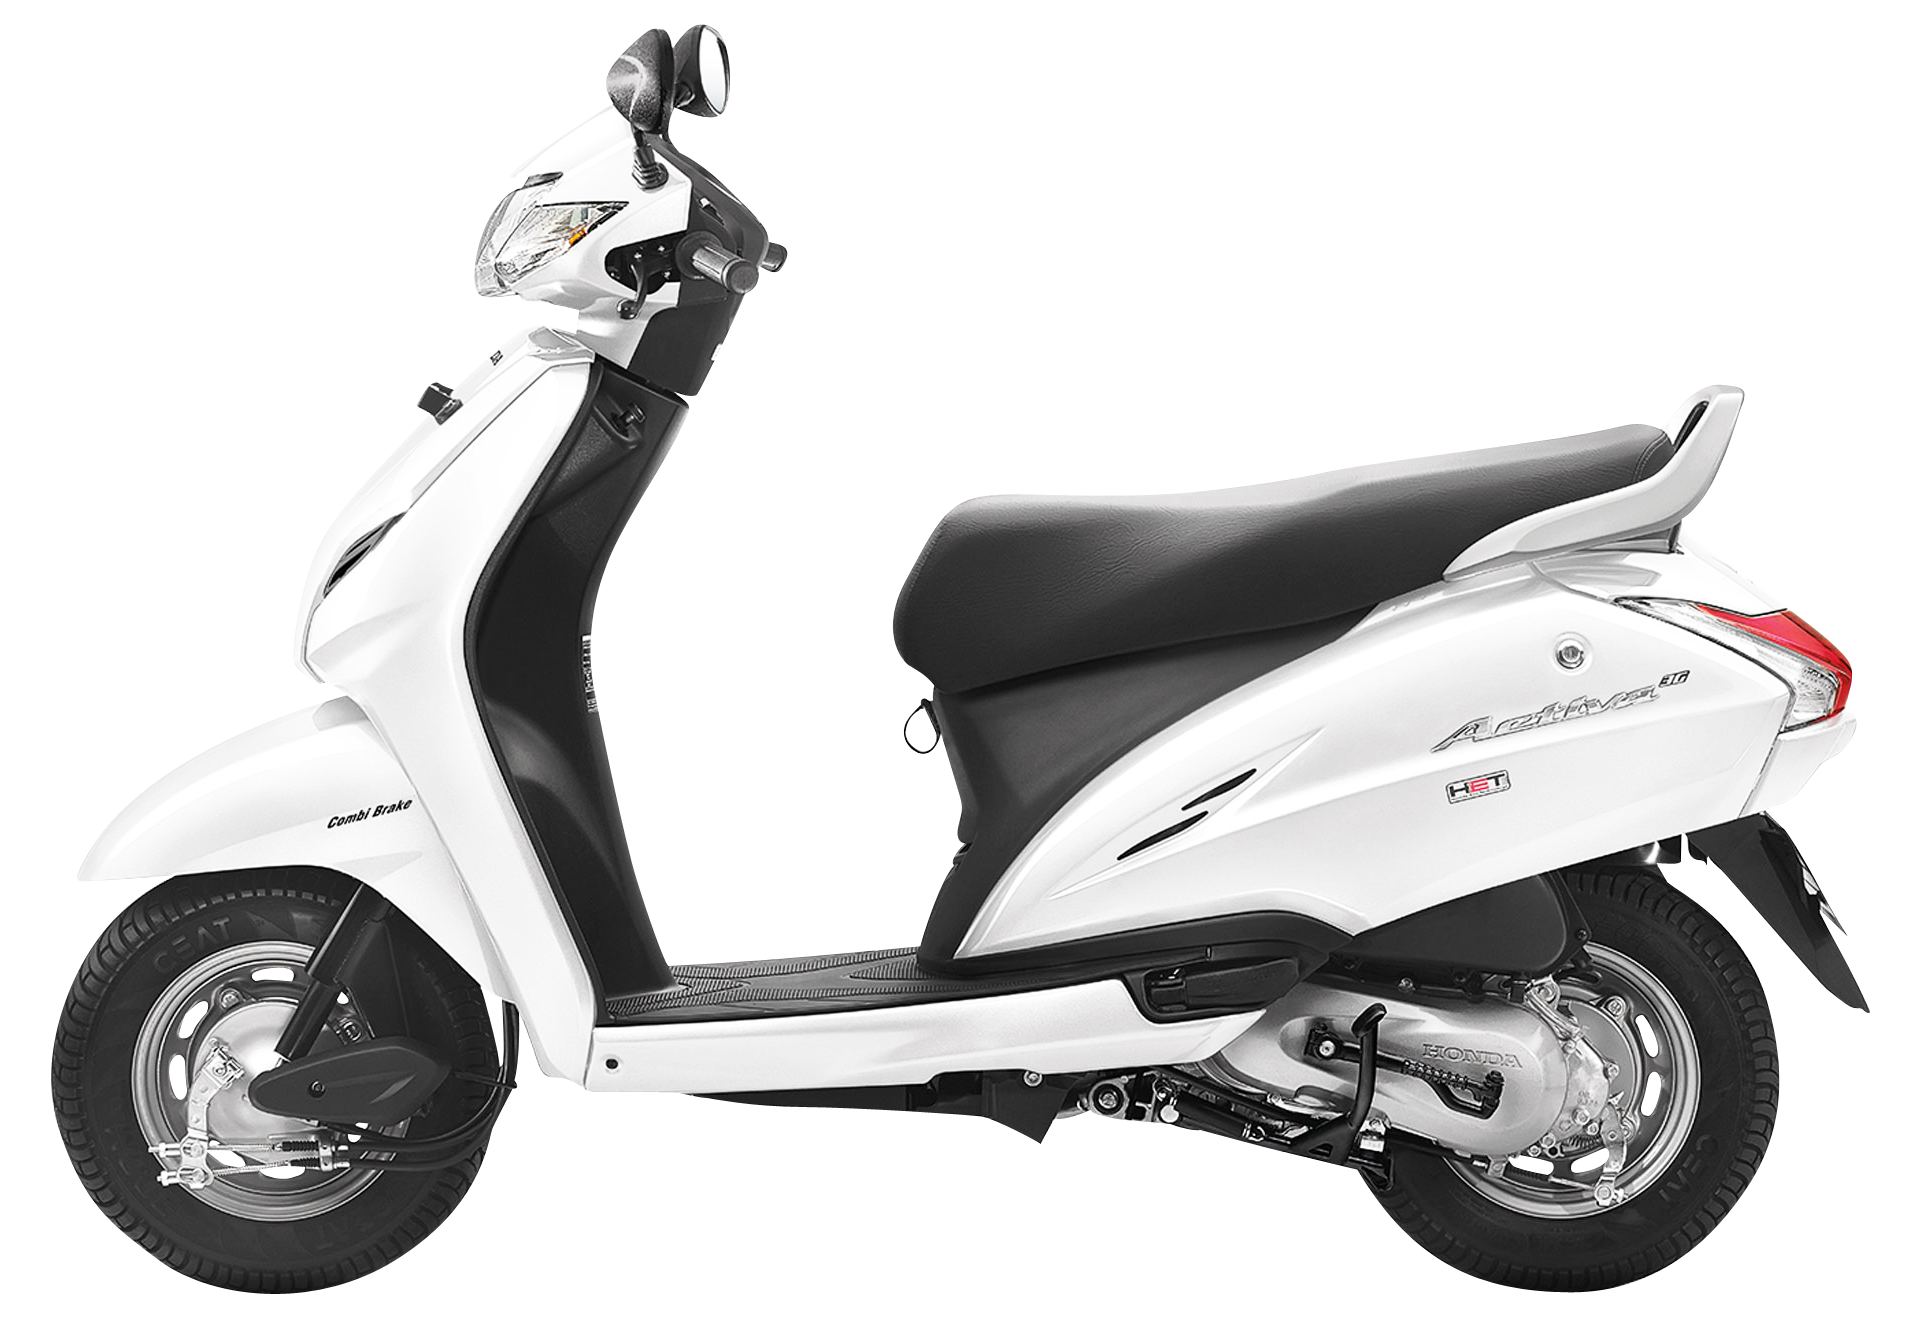 Motorcycle clipart scooty. Honda activa scooter png